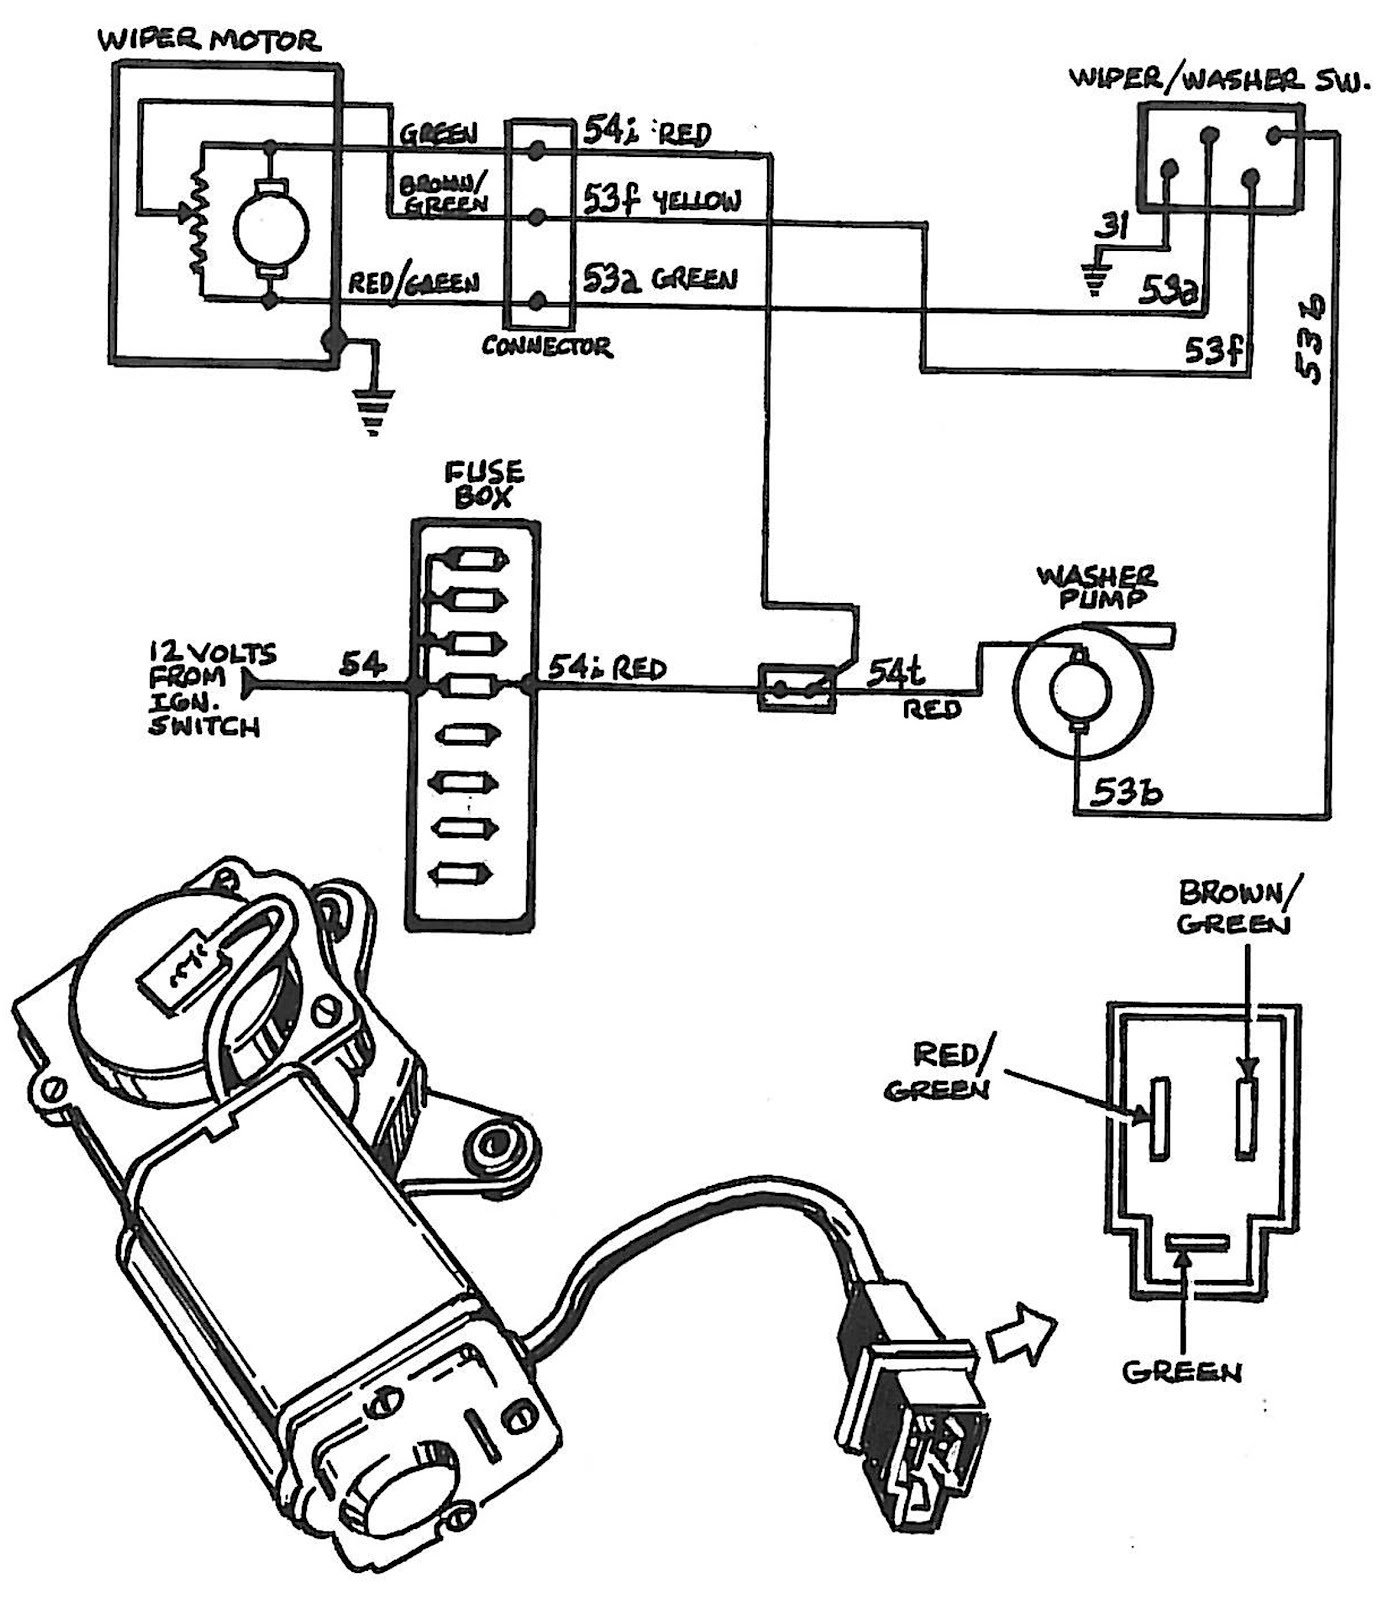 chevy windshield wiper motor wiring diagram CgTTPww wiring diagrams for 1995 ford f 350 pickup wiper motor fixya Chevy Wiper Motor Wiring Diagram at readyjetset.co